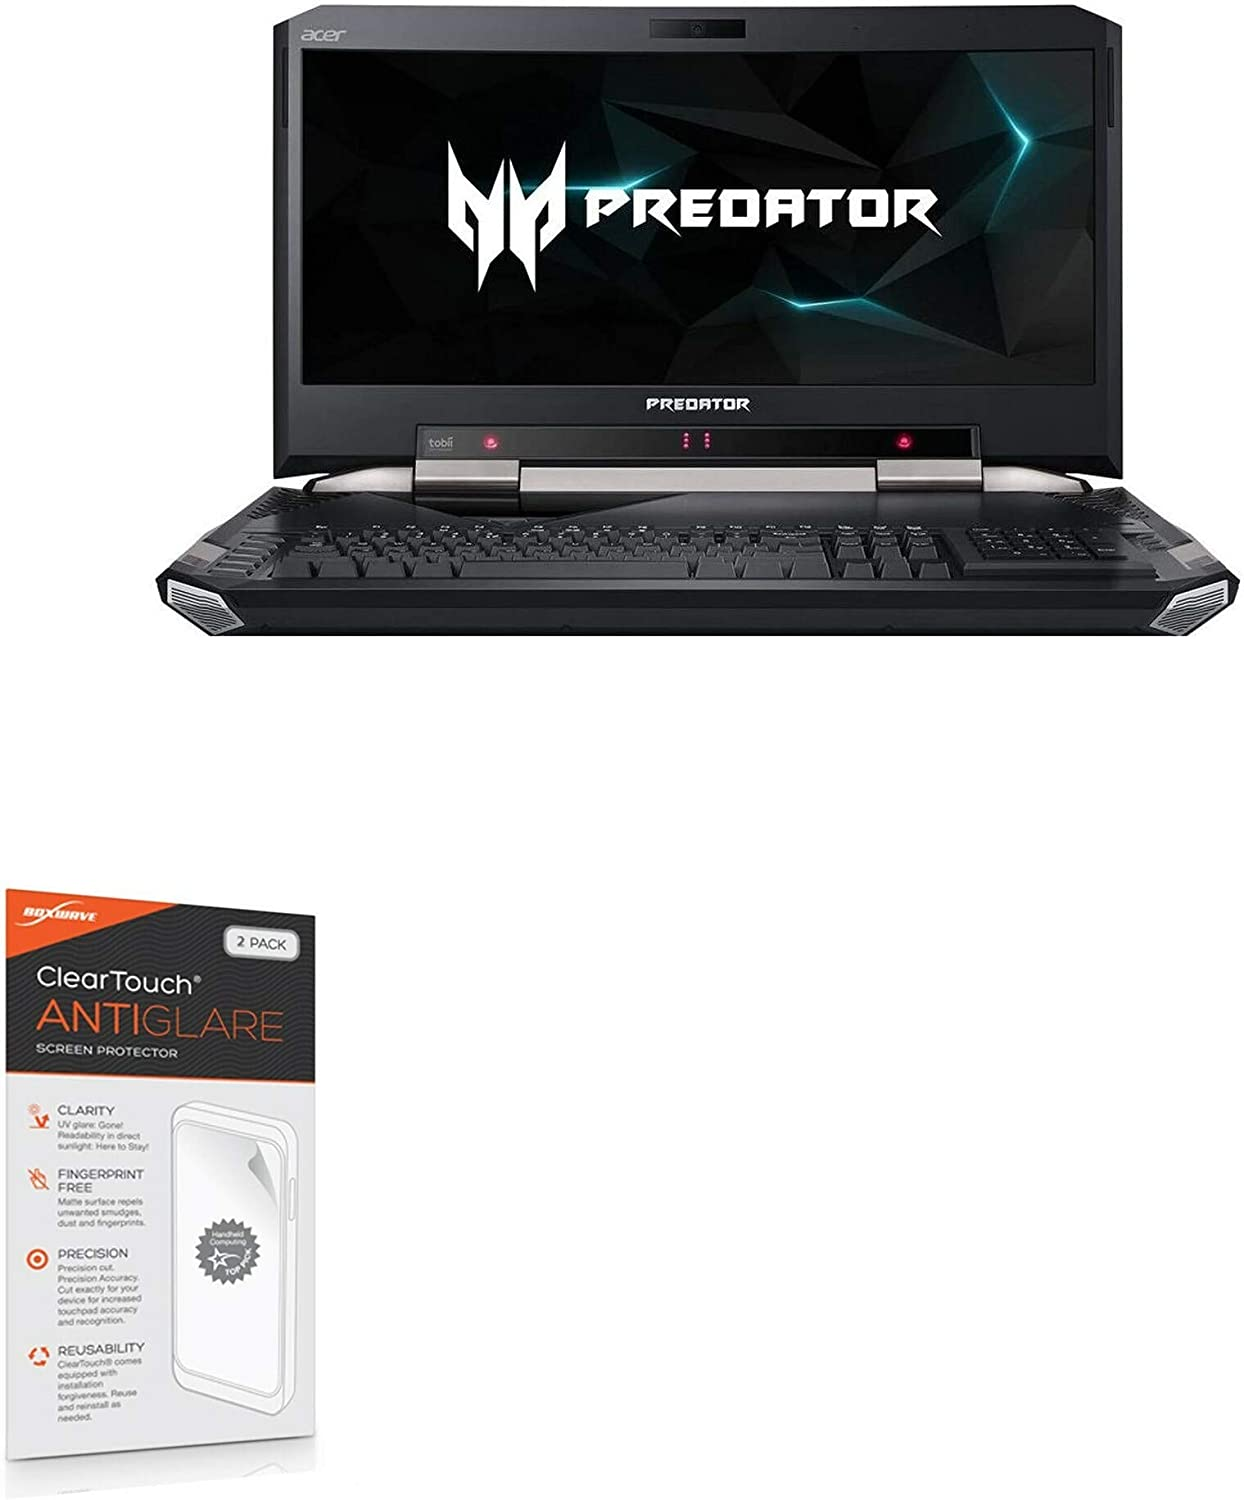 Screen Protector for Acer Predator 21 X (GX21-71-76ZF) (Screen Protector by BoxWave) - ClearTouch Anti-Glare (2-Pack), Anti-Fingerprint Matte Film Skin for Acer Predator 21 X (GX21-71-76ZF)